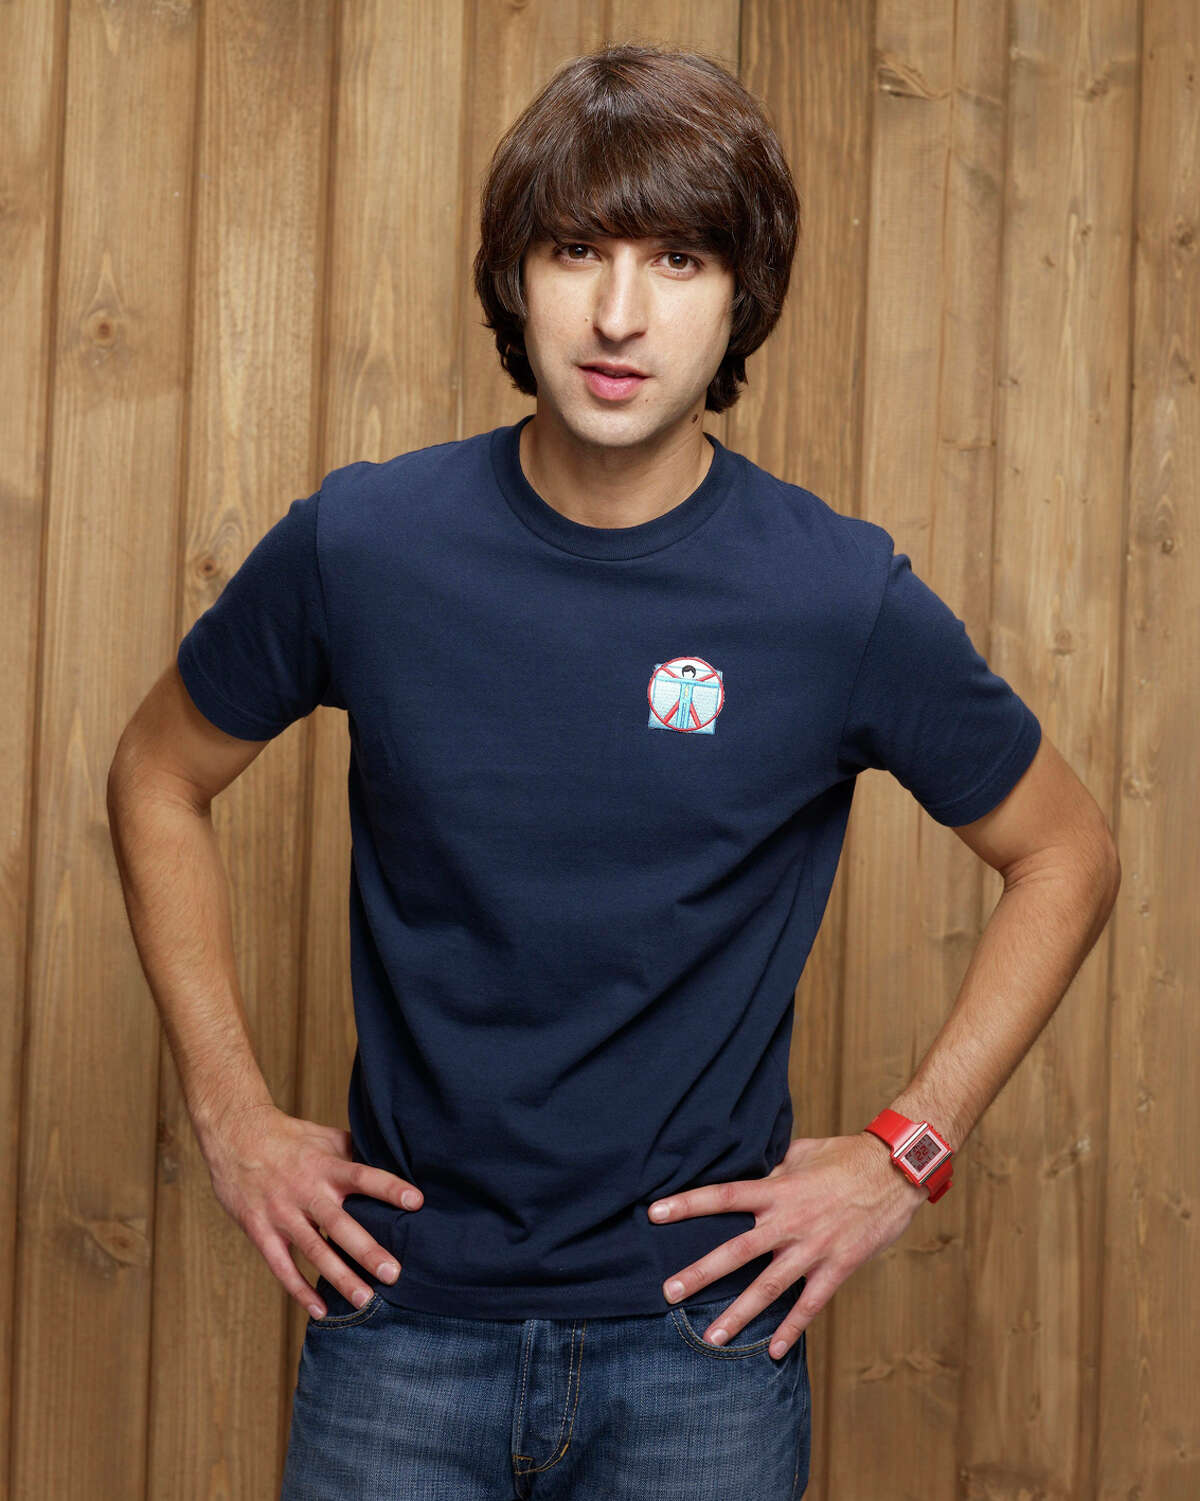 Comedian Demetri Martin is scheduled for an 8 p.m. Friday, April 10, performance at the Egg.